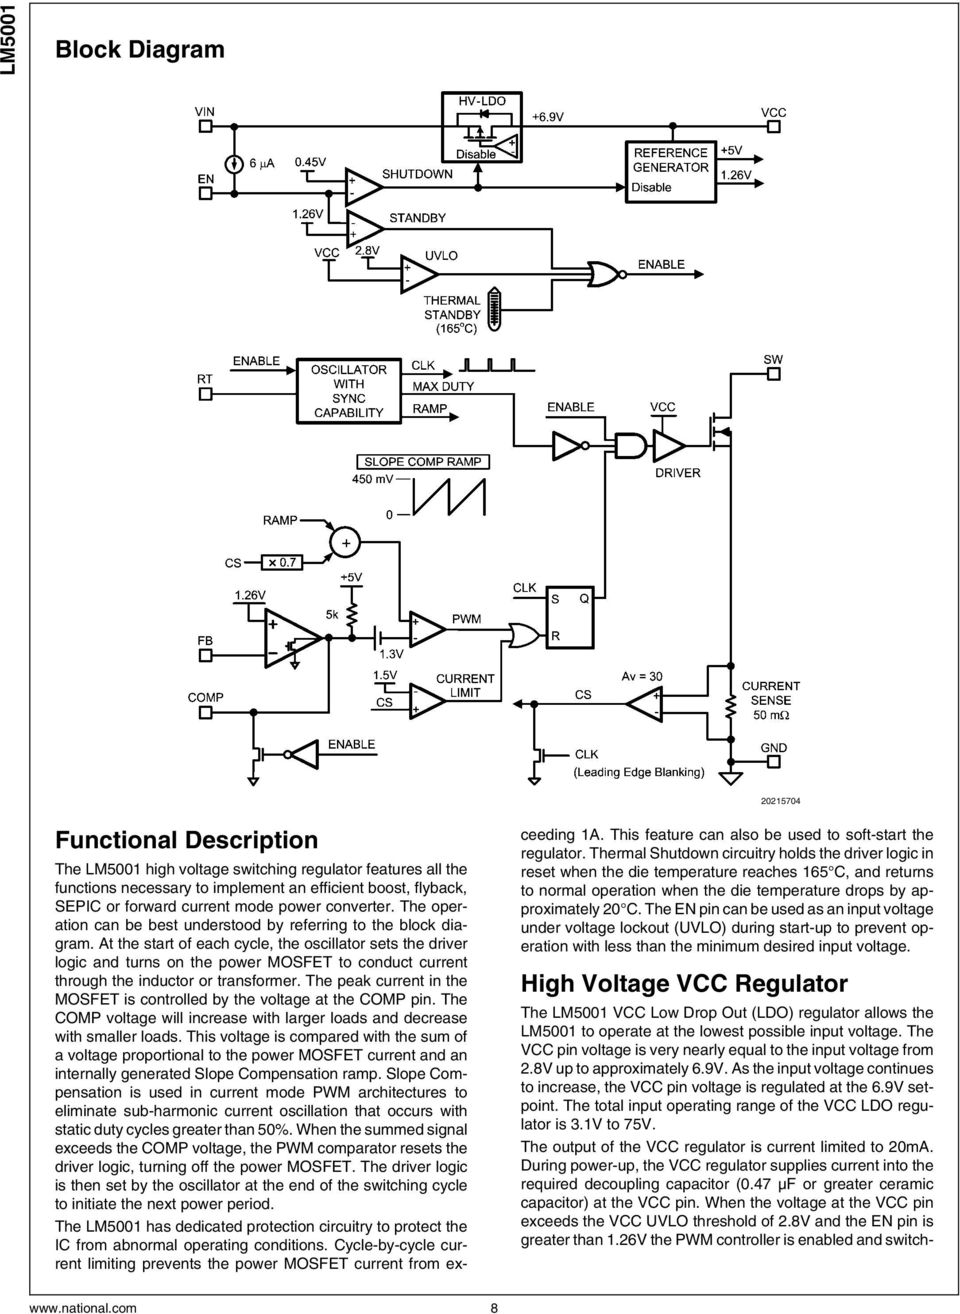 Lm5001 High Voltage Switch Mode Regulator Pdf Circuit Of Lm339 Motorcontrol Controlcircuit Diagram At The Start Each Cycle Oscillator Sets Driver Logic And Turns On